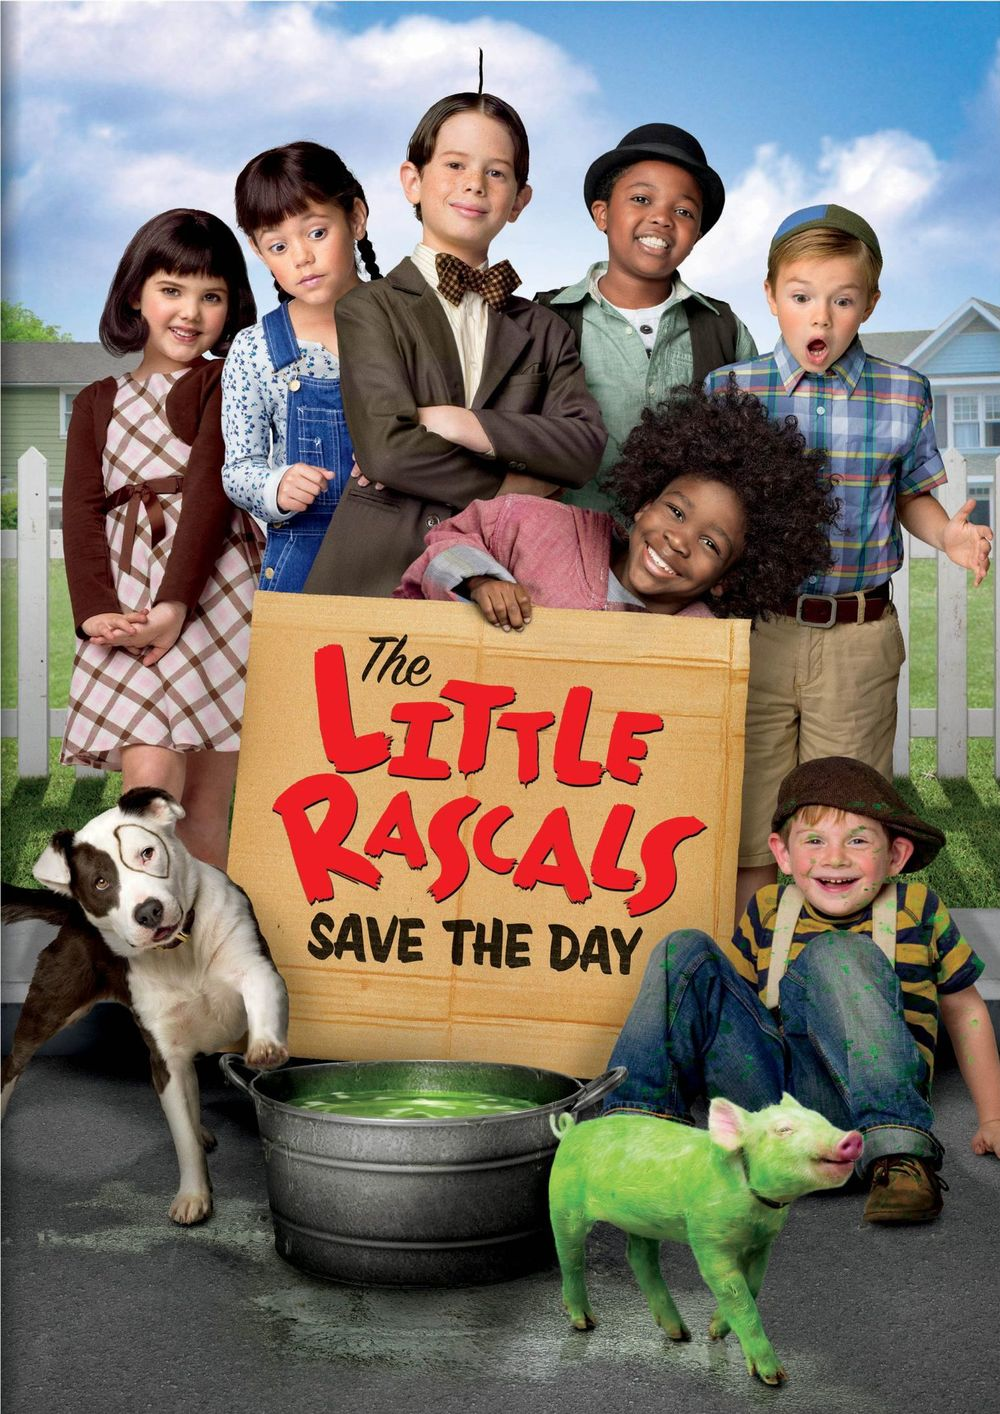 the-little-rascals-save-the-day-dvd-cover-92.jpg